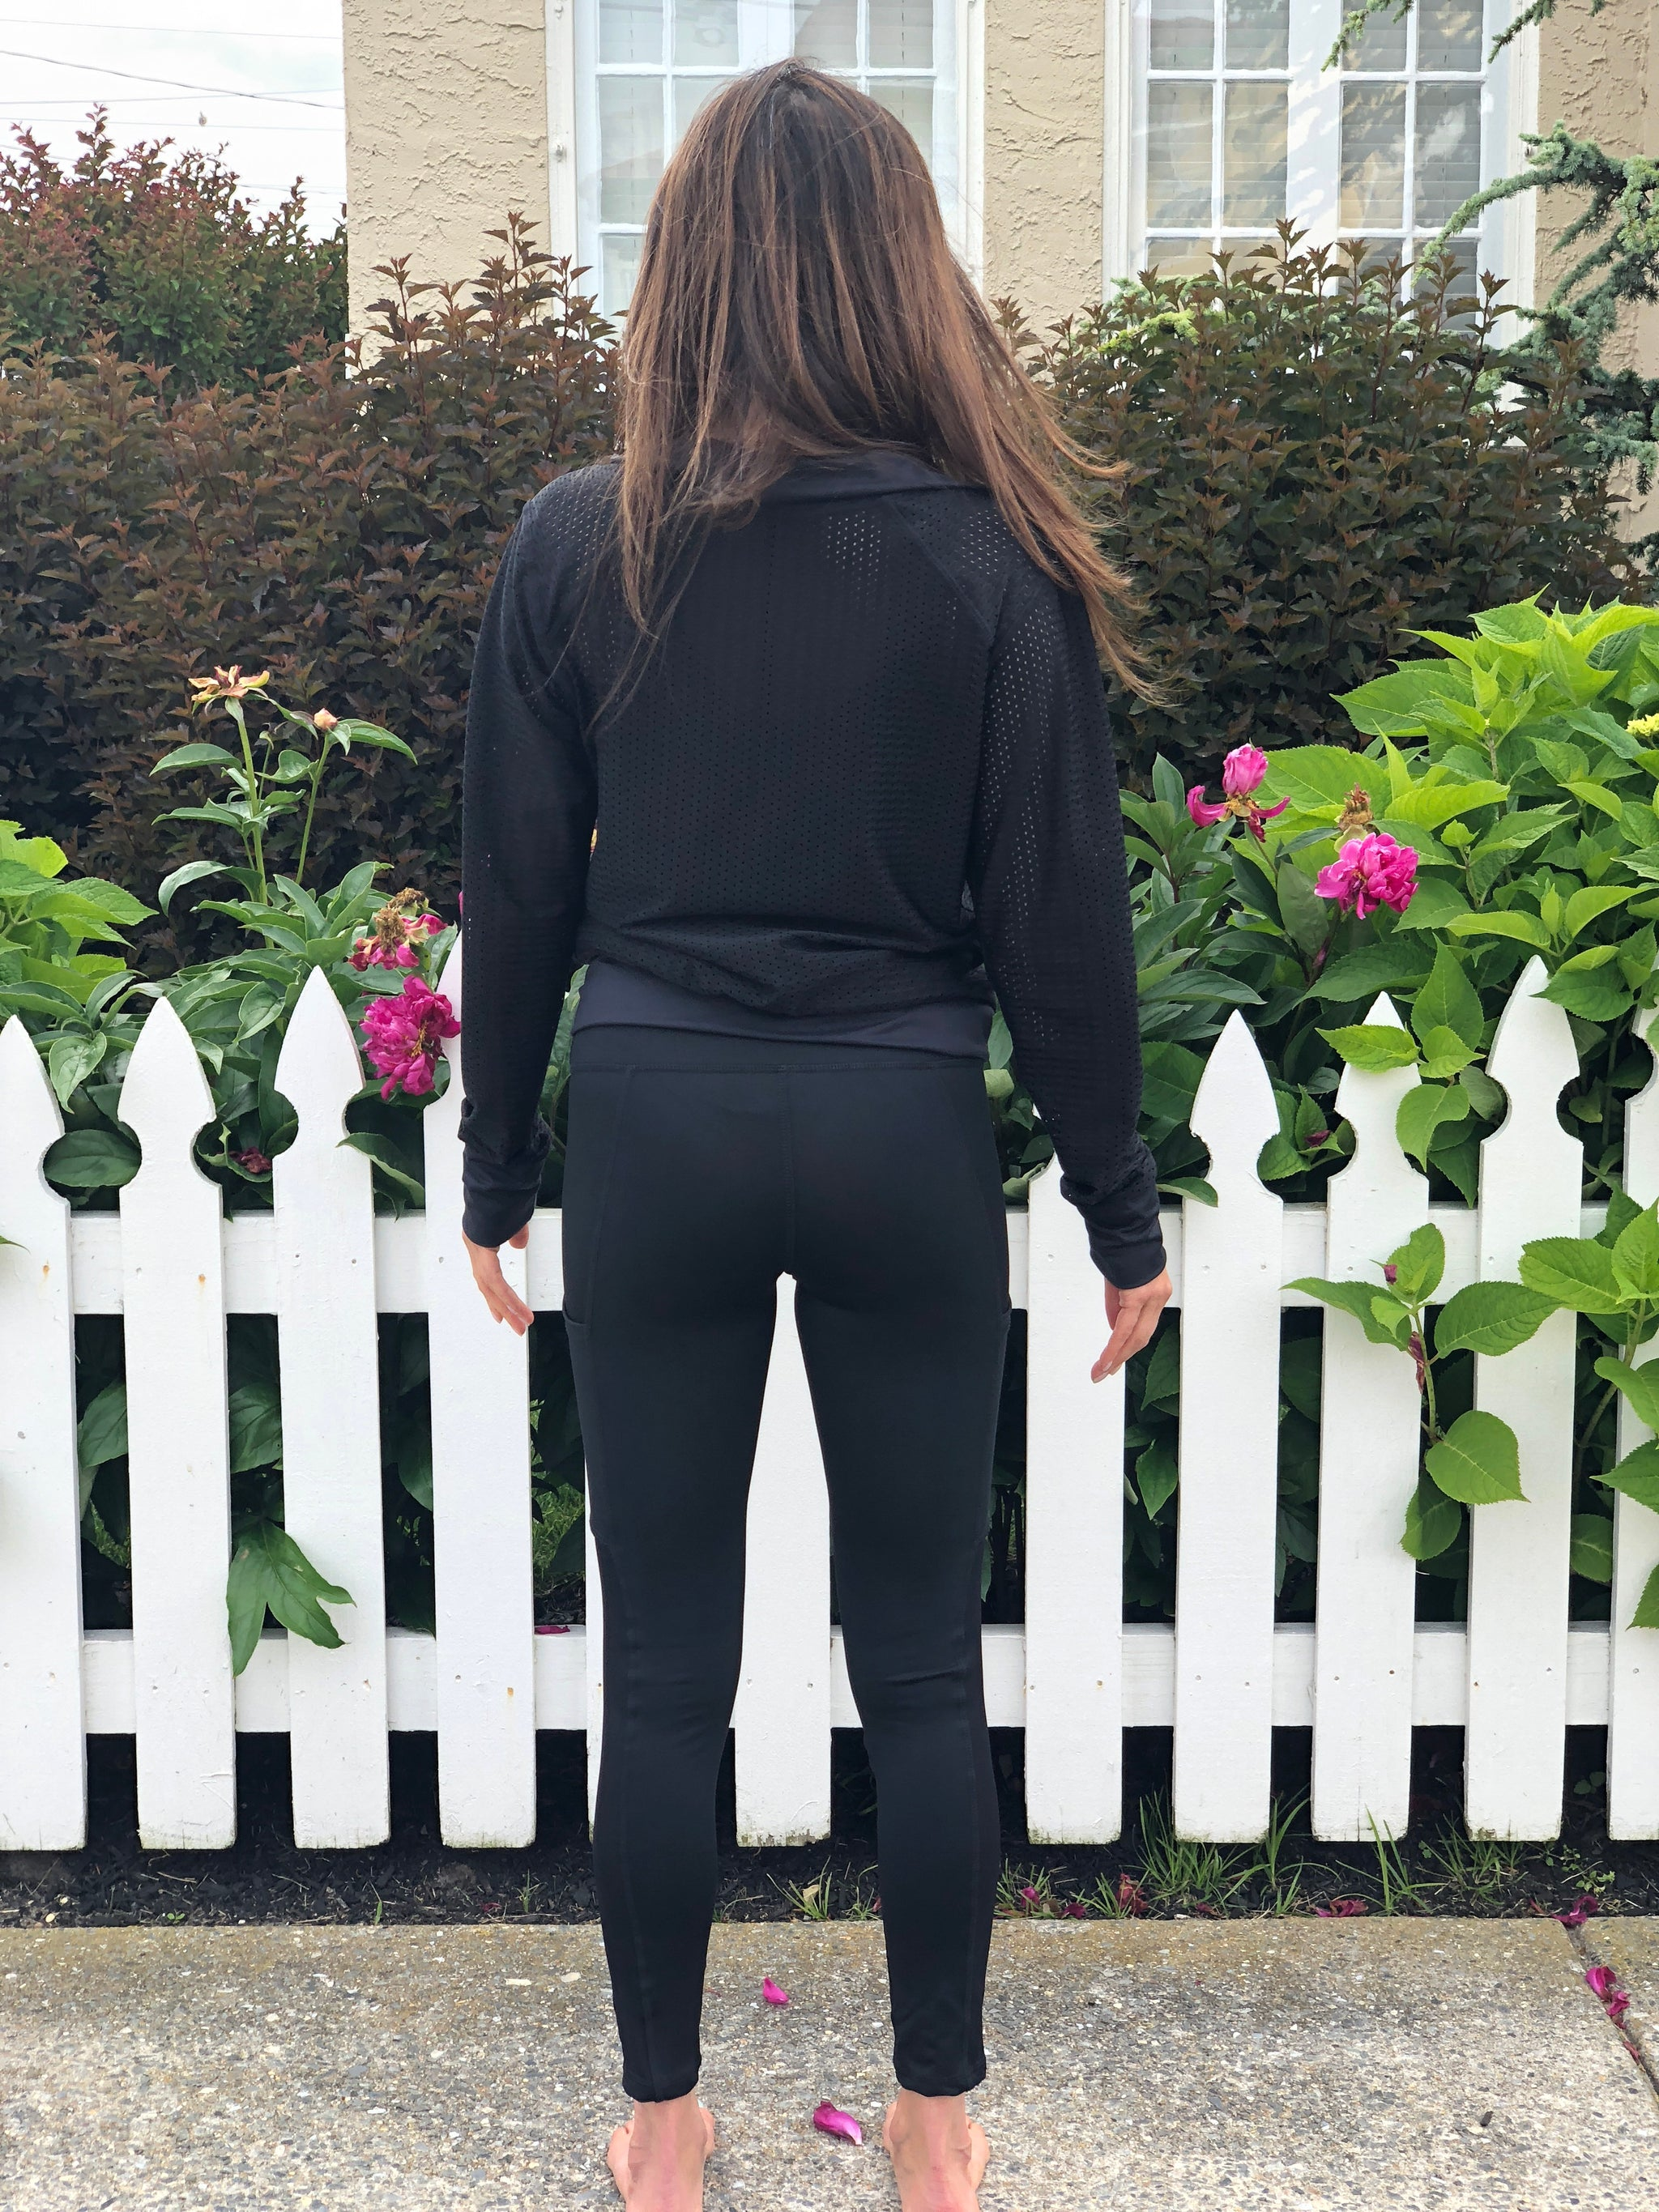 Yoga Pants With Pockets - Black Mesh Yoga Pants with Cell Phone Pocket